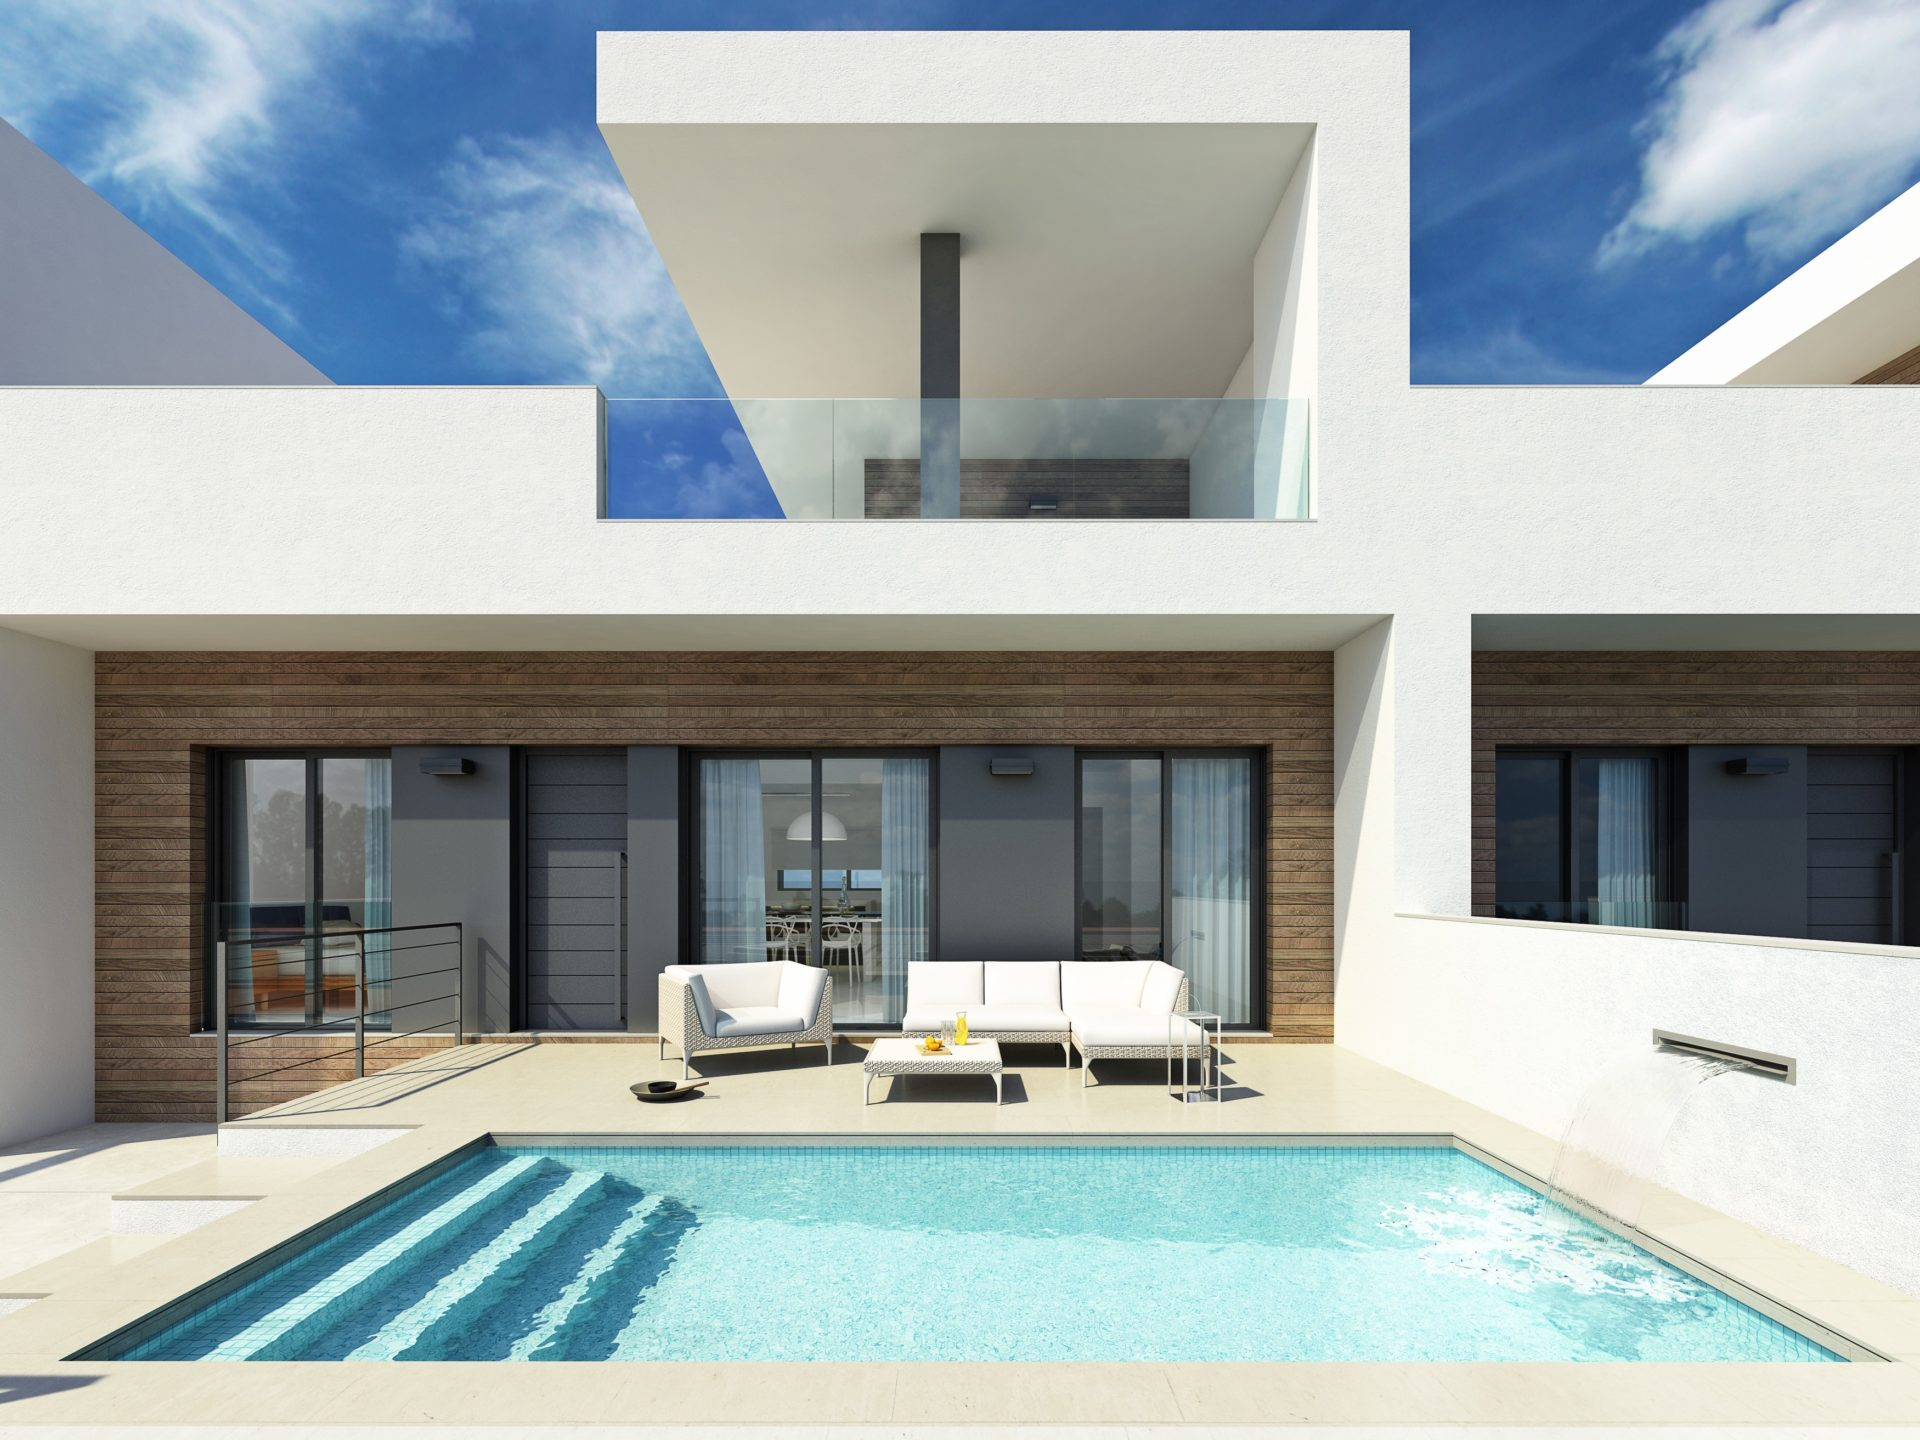 Novomar 3 Phase 2 Villas with Private Pool Daya Vieja